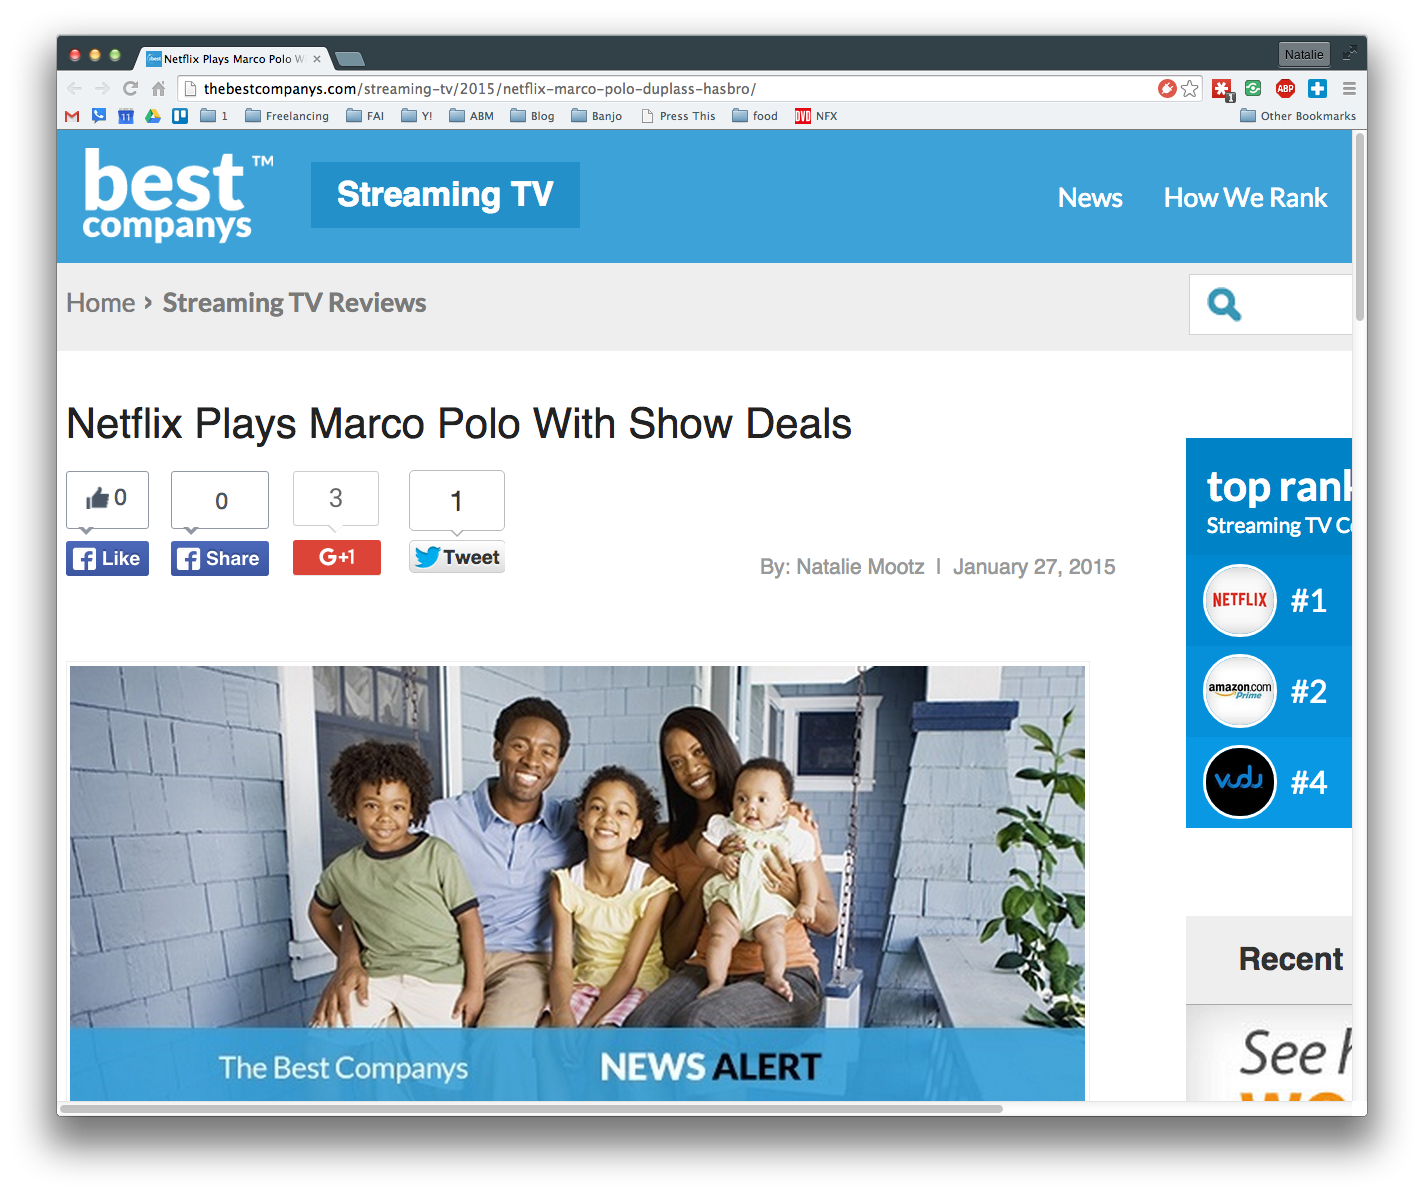 Netflix Plays Marco Polo With Show Deals